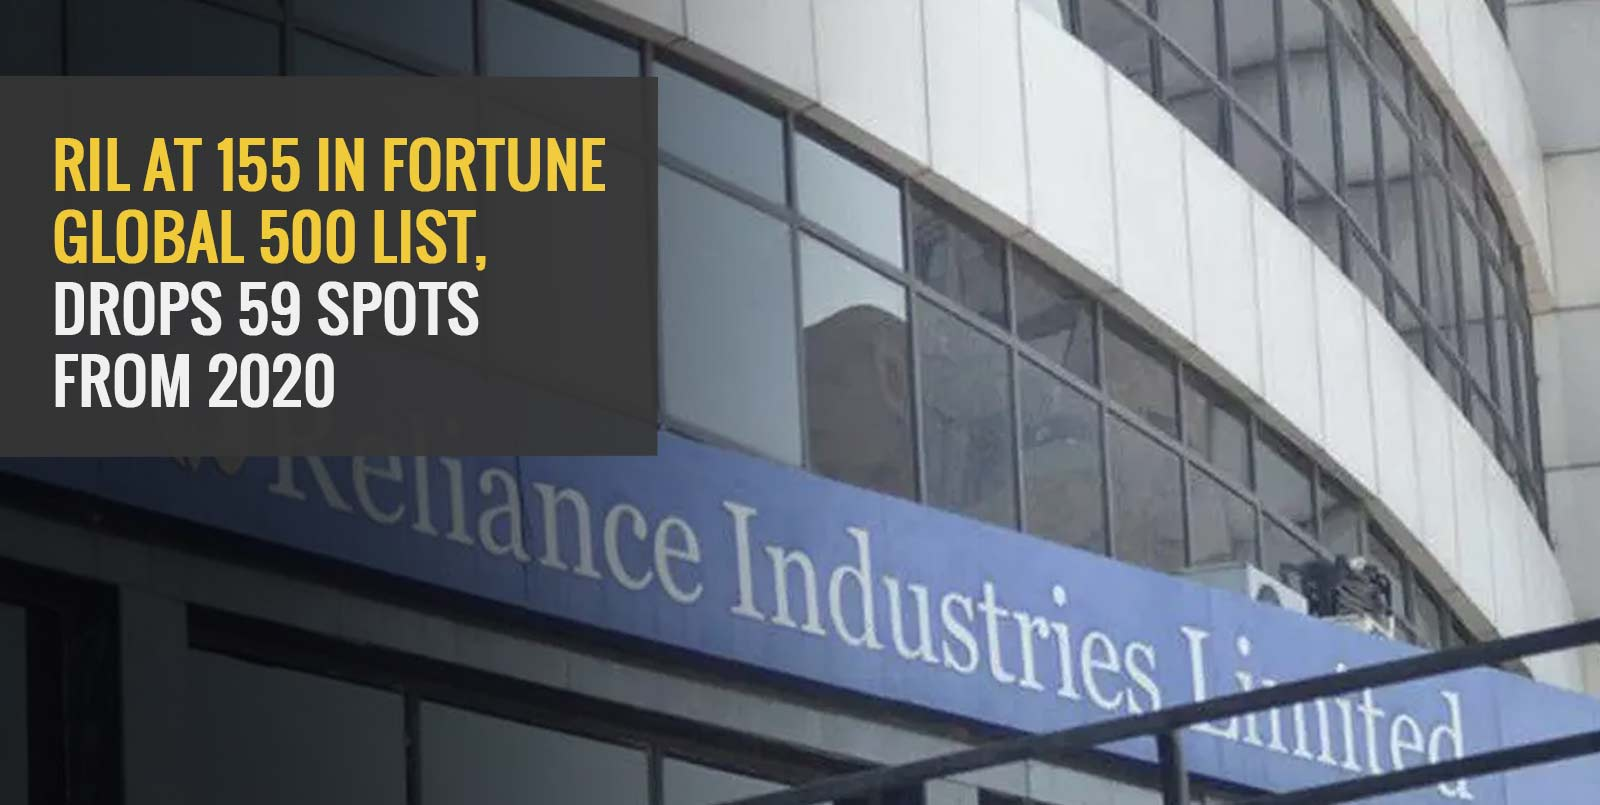 RIL at 155 in Fortune Global 500 list, drops 59 spots from 2020